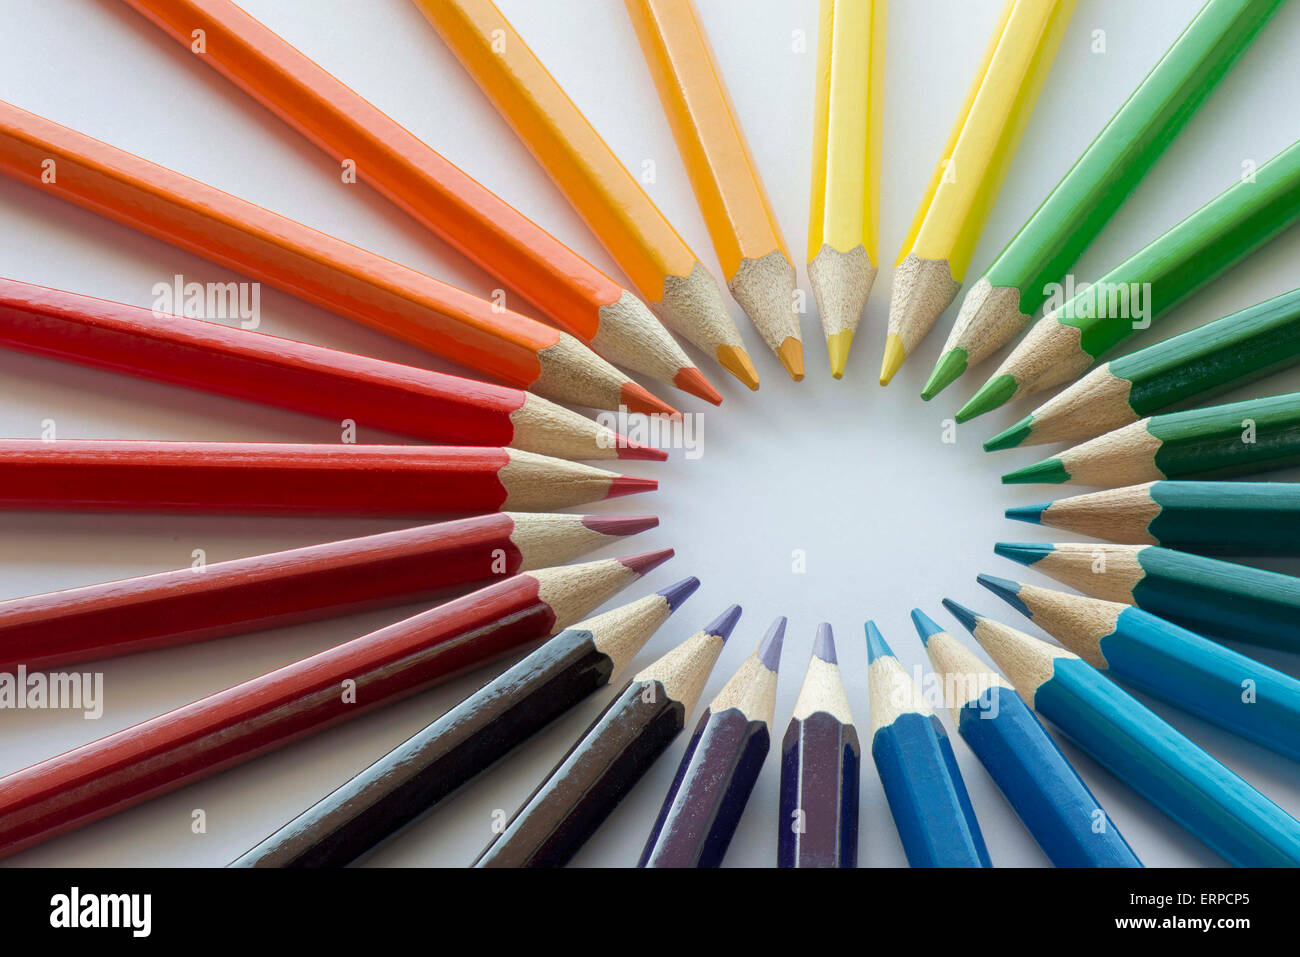 Abstract composition of a set wooden colour pencils in complementary ...